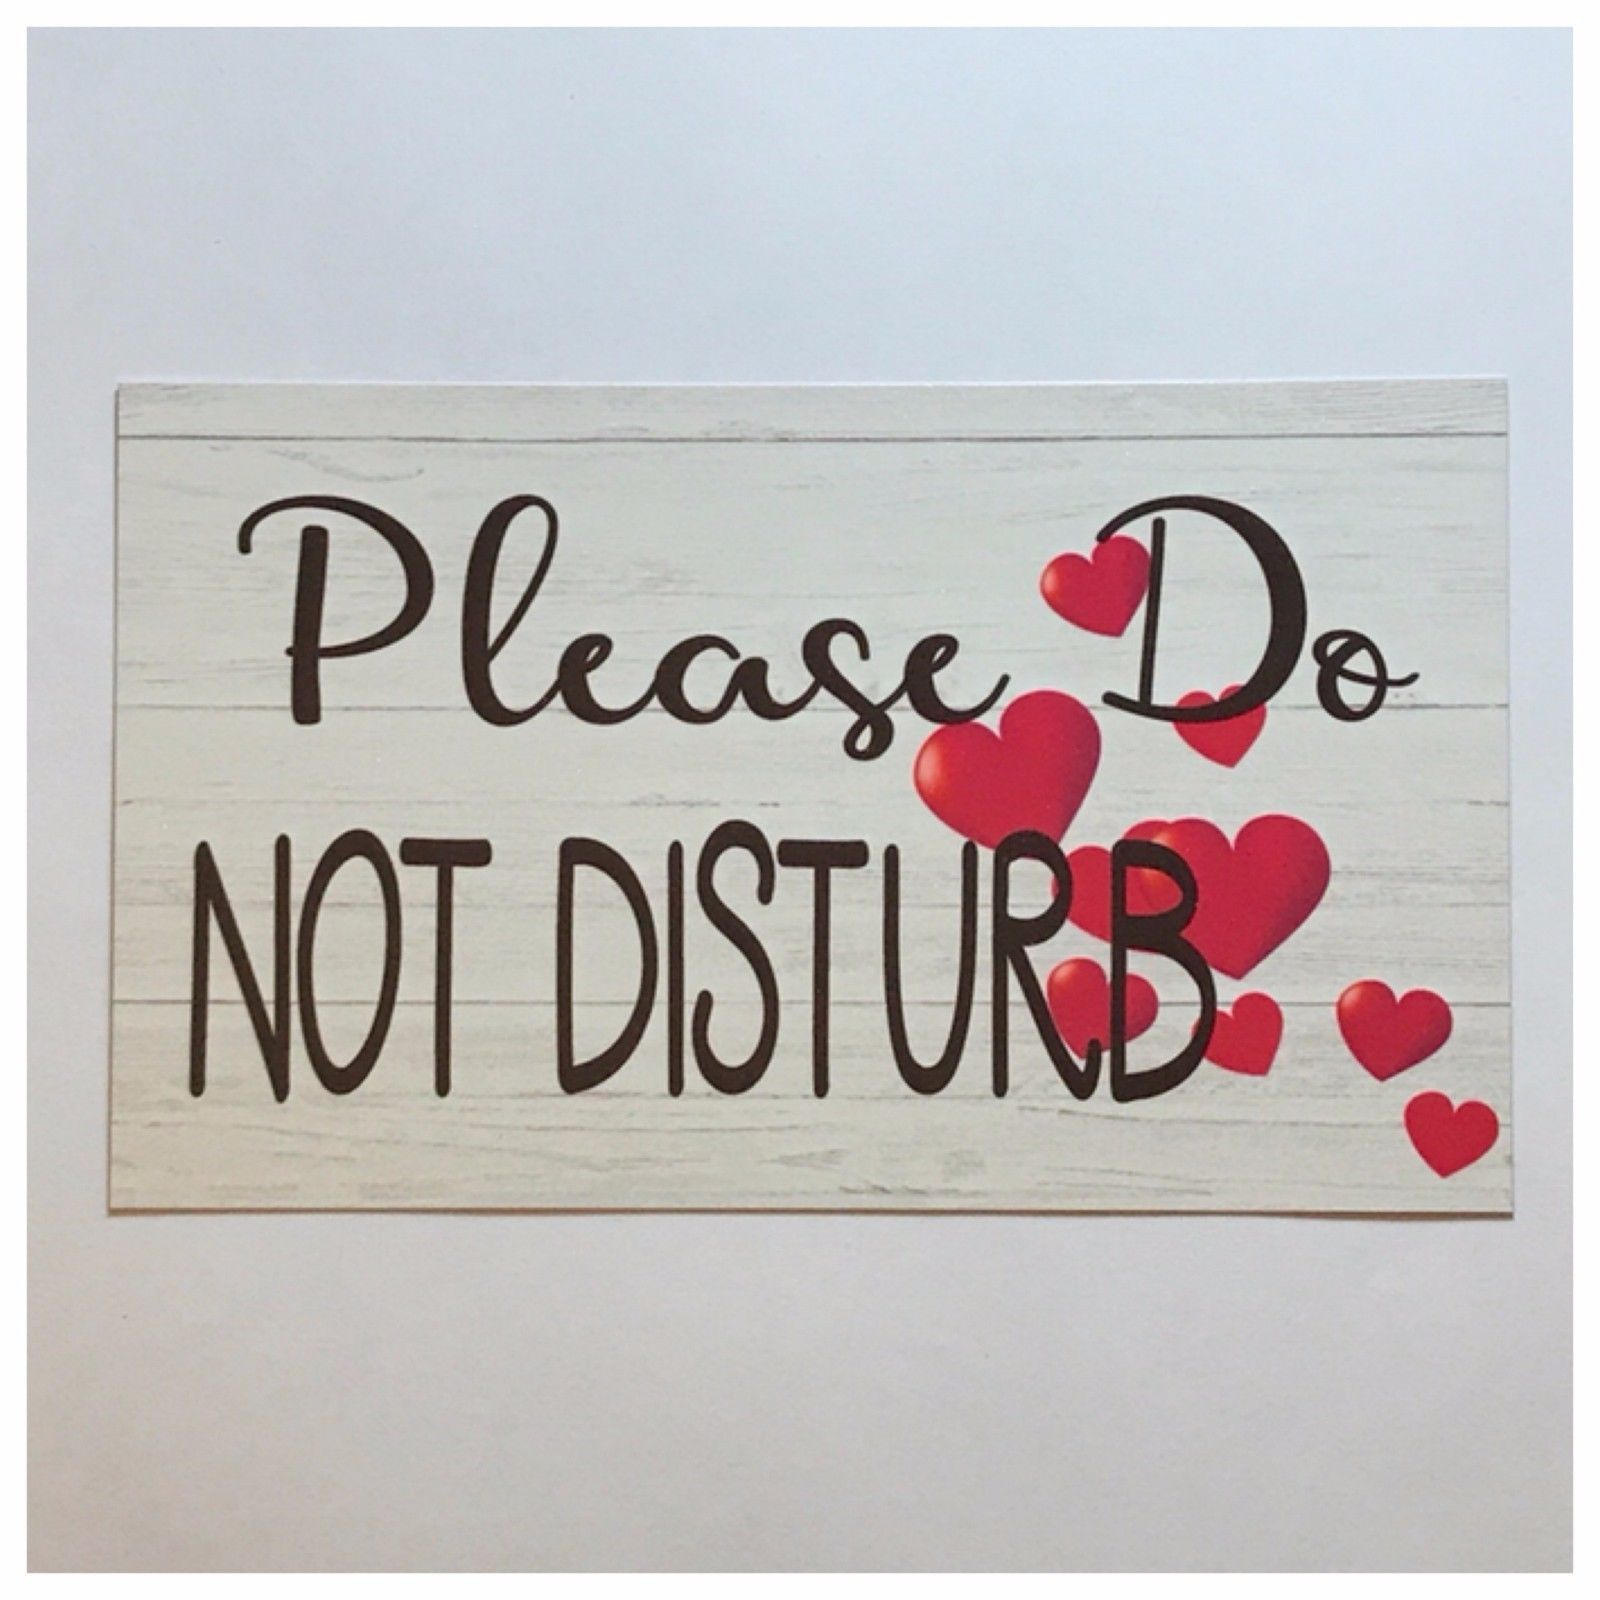 Please Do Not Disturb with Love Hearts Wedding Sign Wall Plaque or Hanging Plaques & Signs The Renmy Store